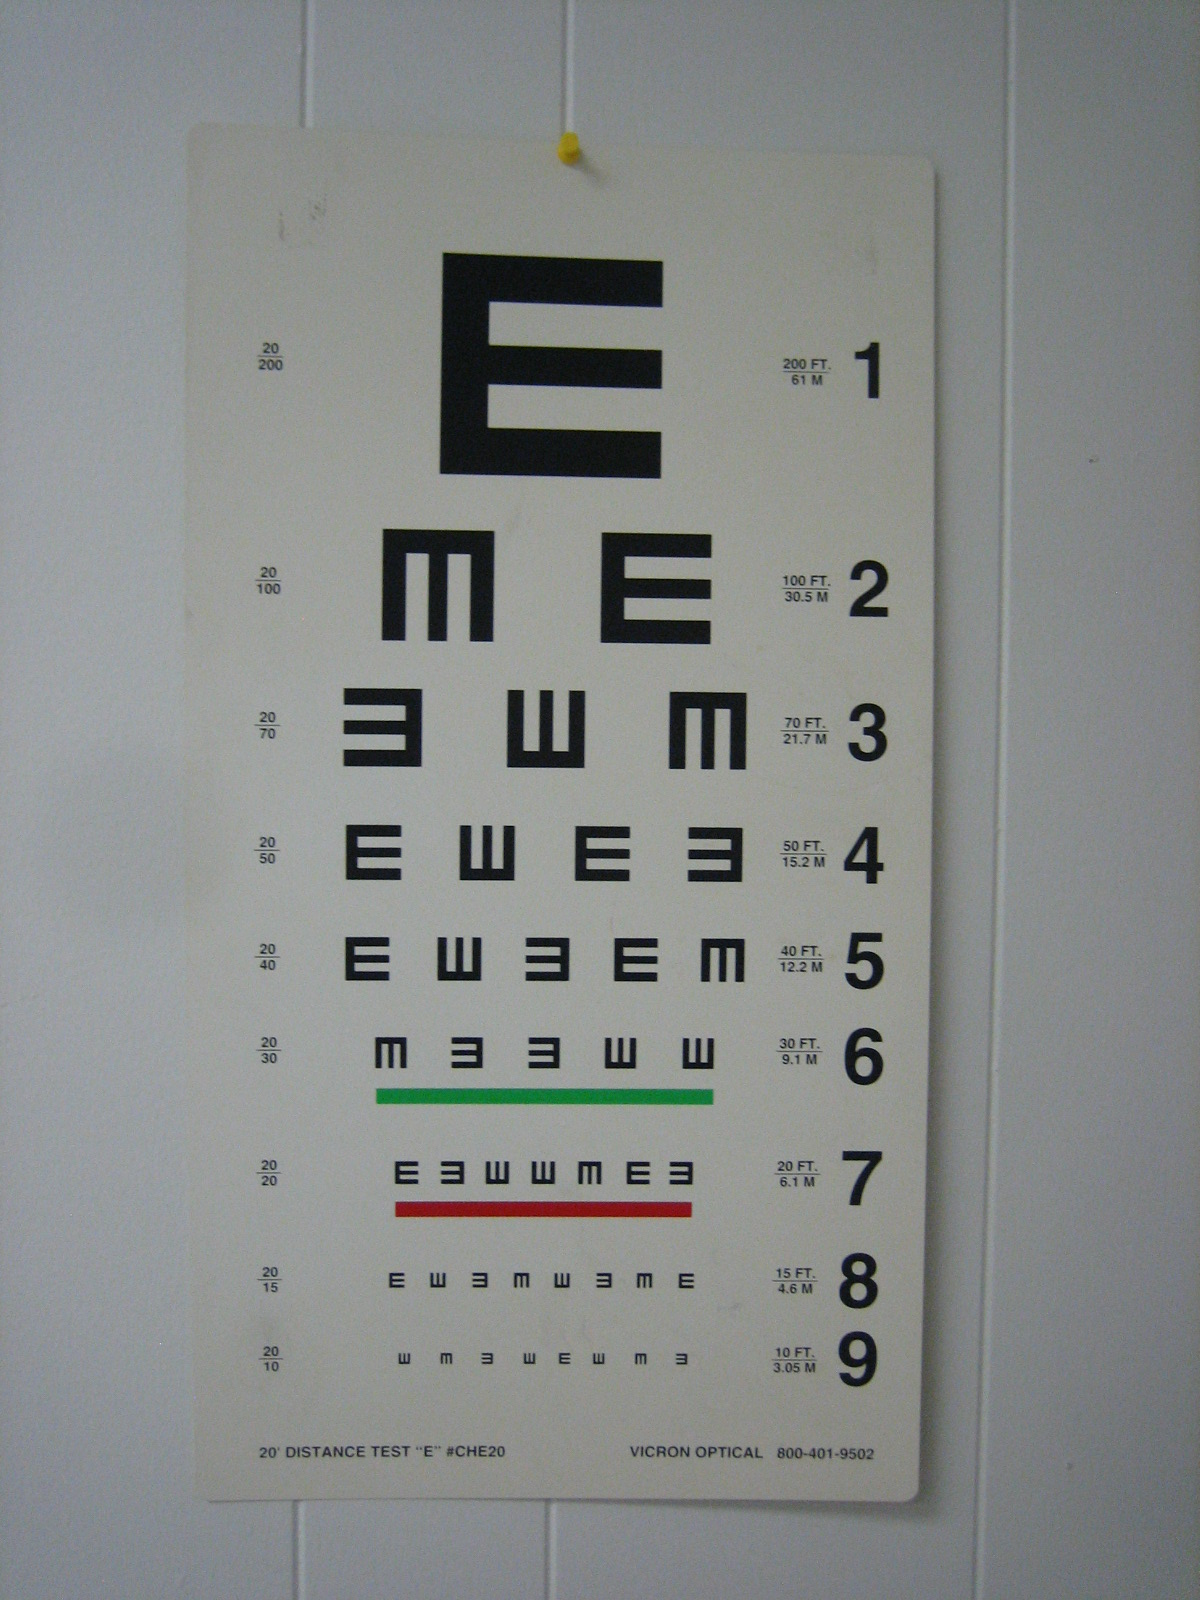 Delgado 90 years delgado a z ophthalmic medical assistant standard eye test chart nvjuhfo Image collections